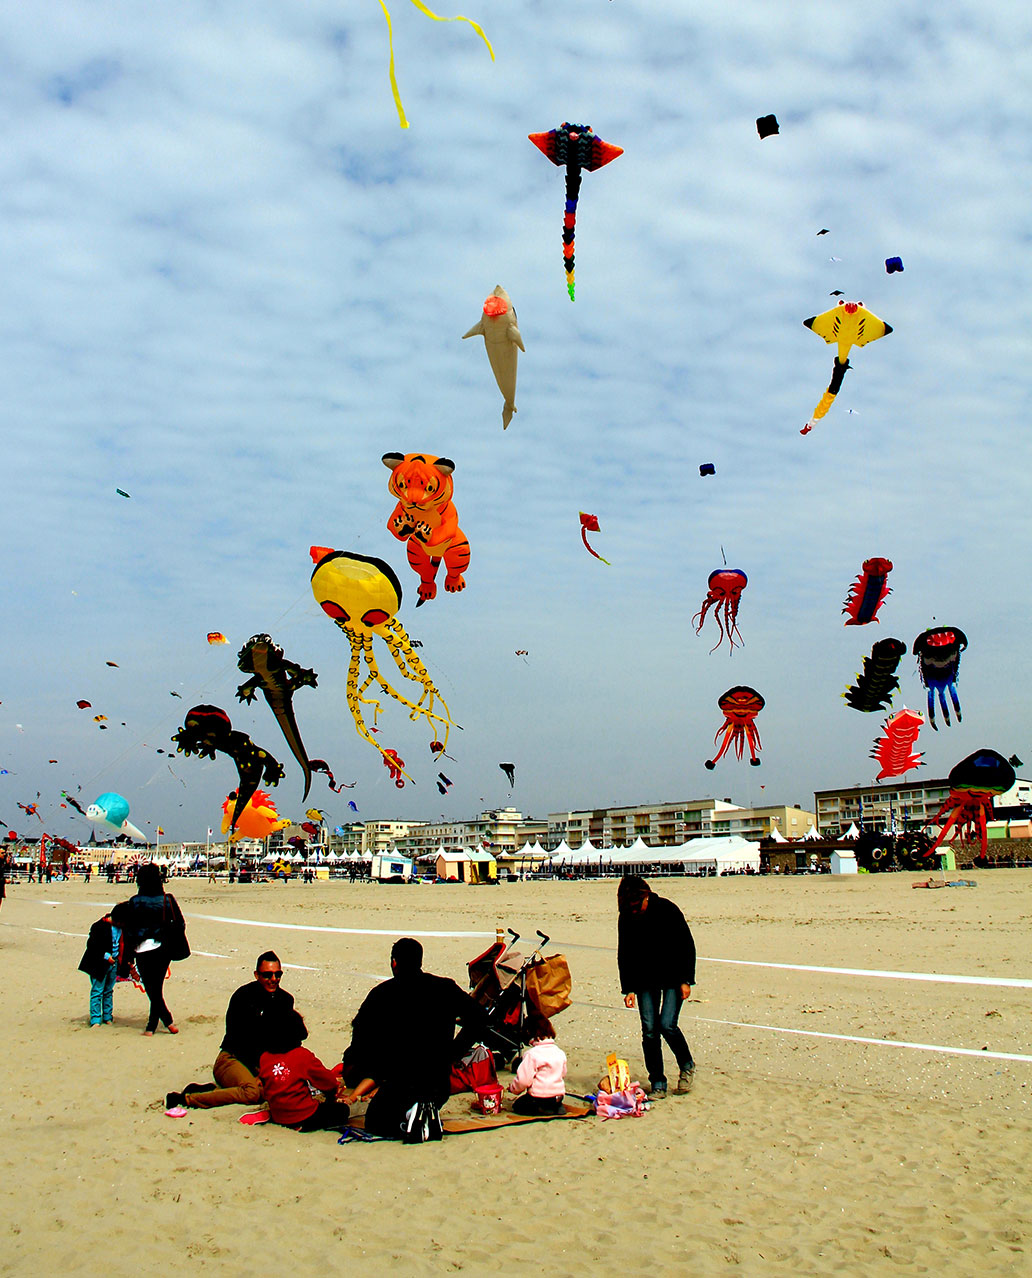 International Kite Festival, Berck-sur-Mer (Cerfs Volants)